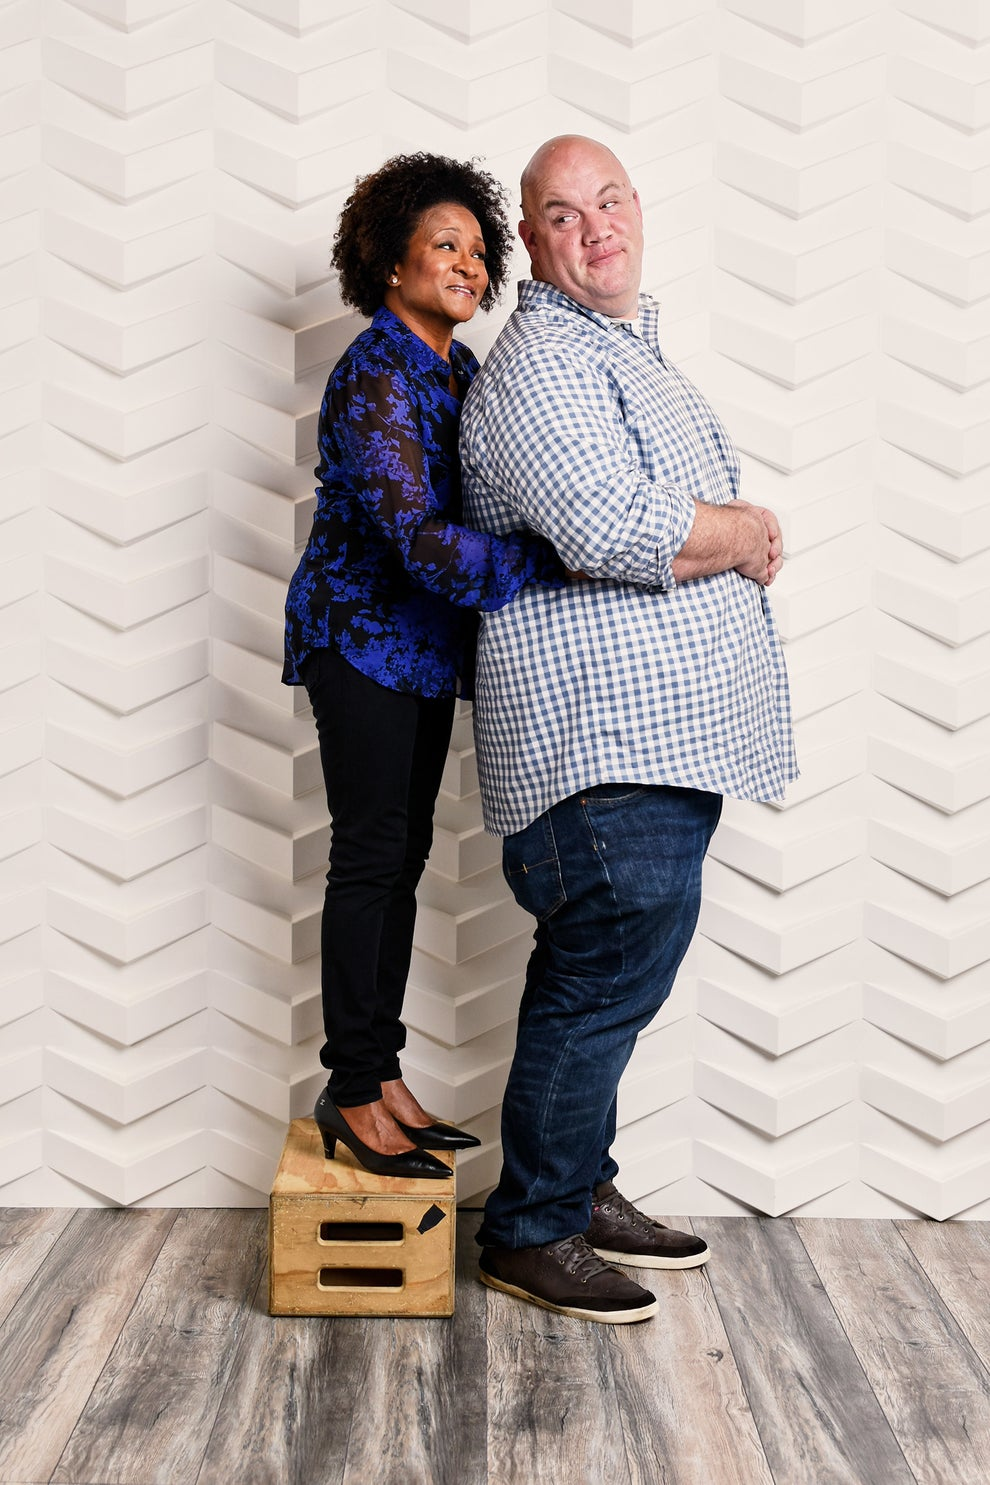 Talk Show the Game Show executive producer Wanda Sykes with creator and host Guy Branum